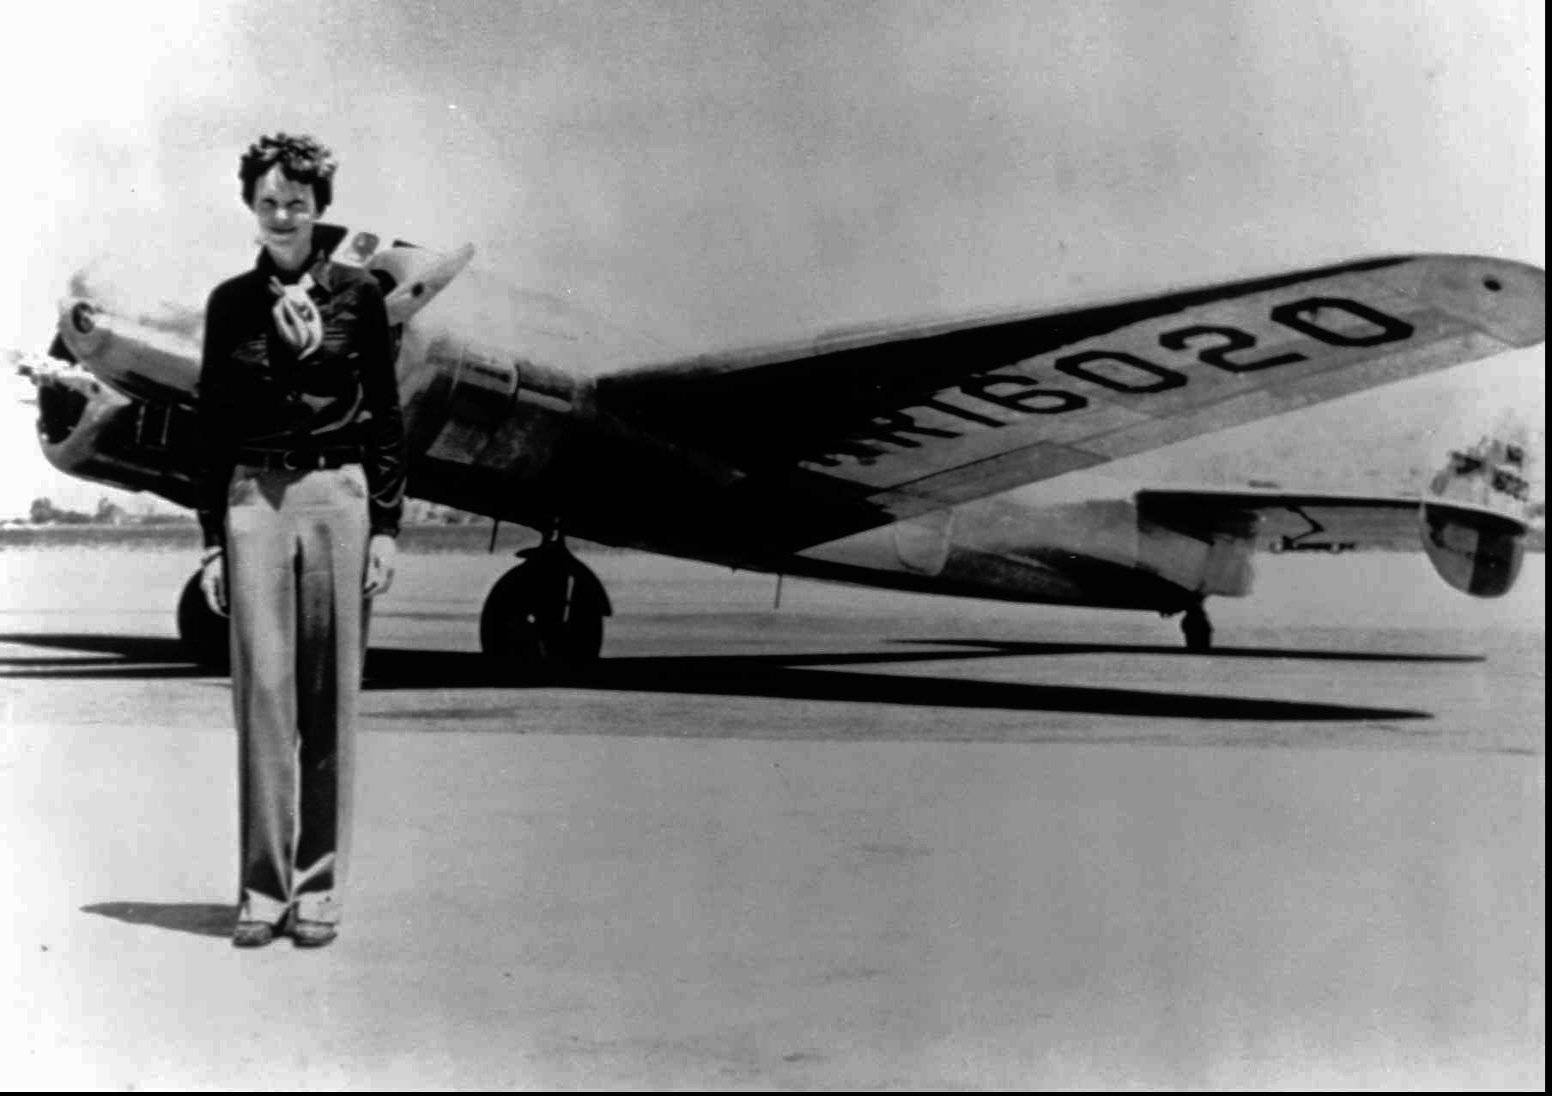 Amelia Earhart stands next to a Lockheed Electra 10E before her last flight in 1937 from Oakland, Calif., bound for Honolulu on the first leg of her record-setting attempt to circumnavigate the world westward along the Equator. Earhart's disappearance in 1937 is among aviation's most enduring mysteries.